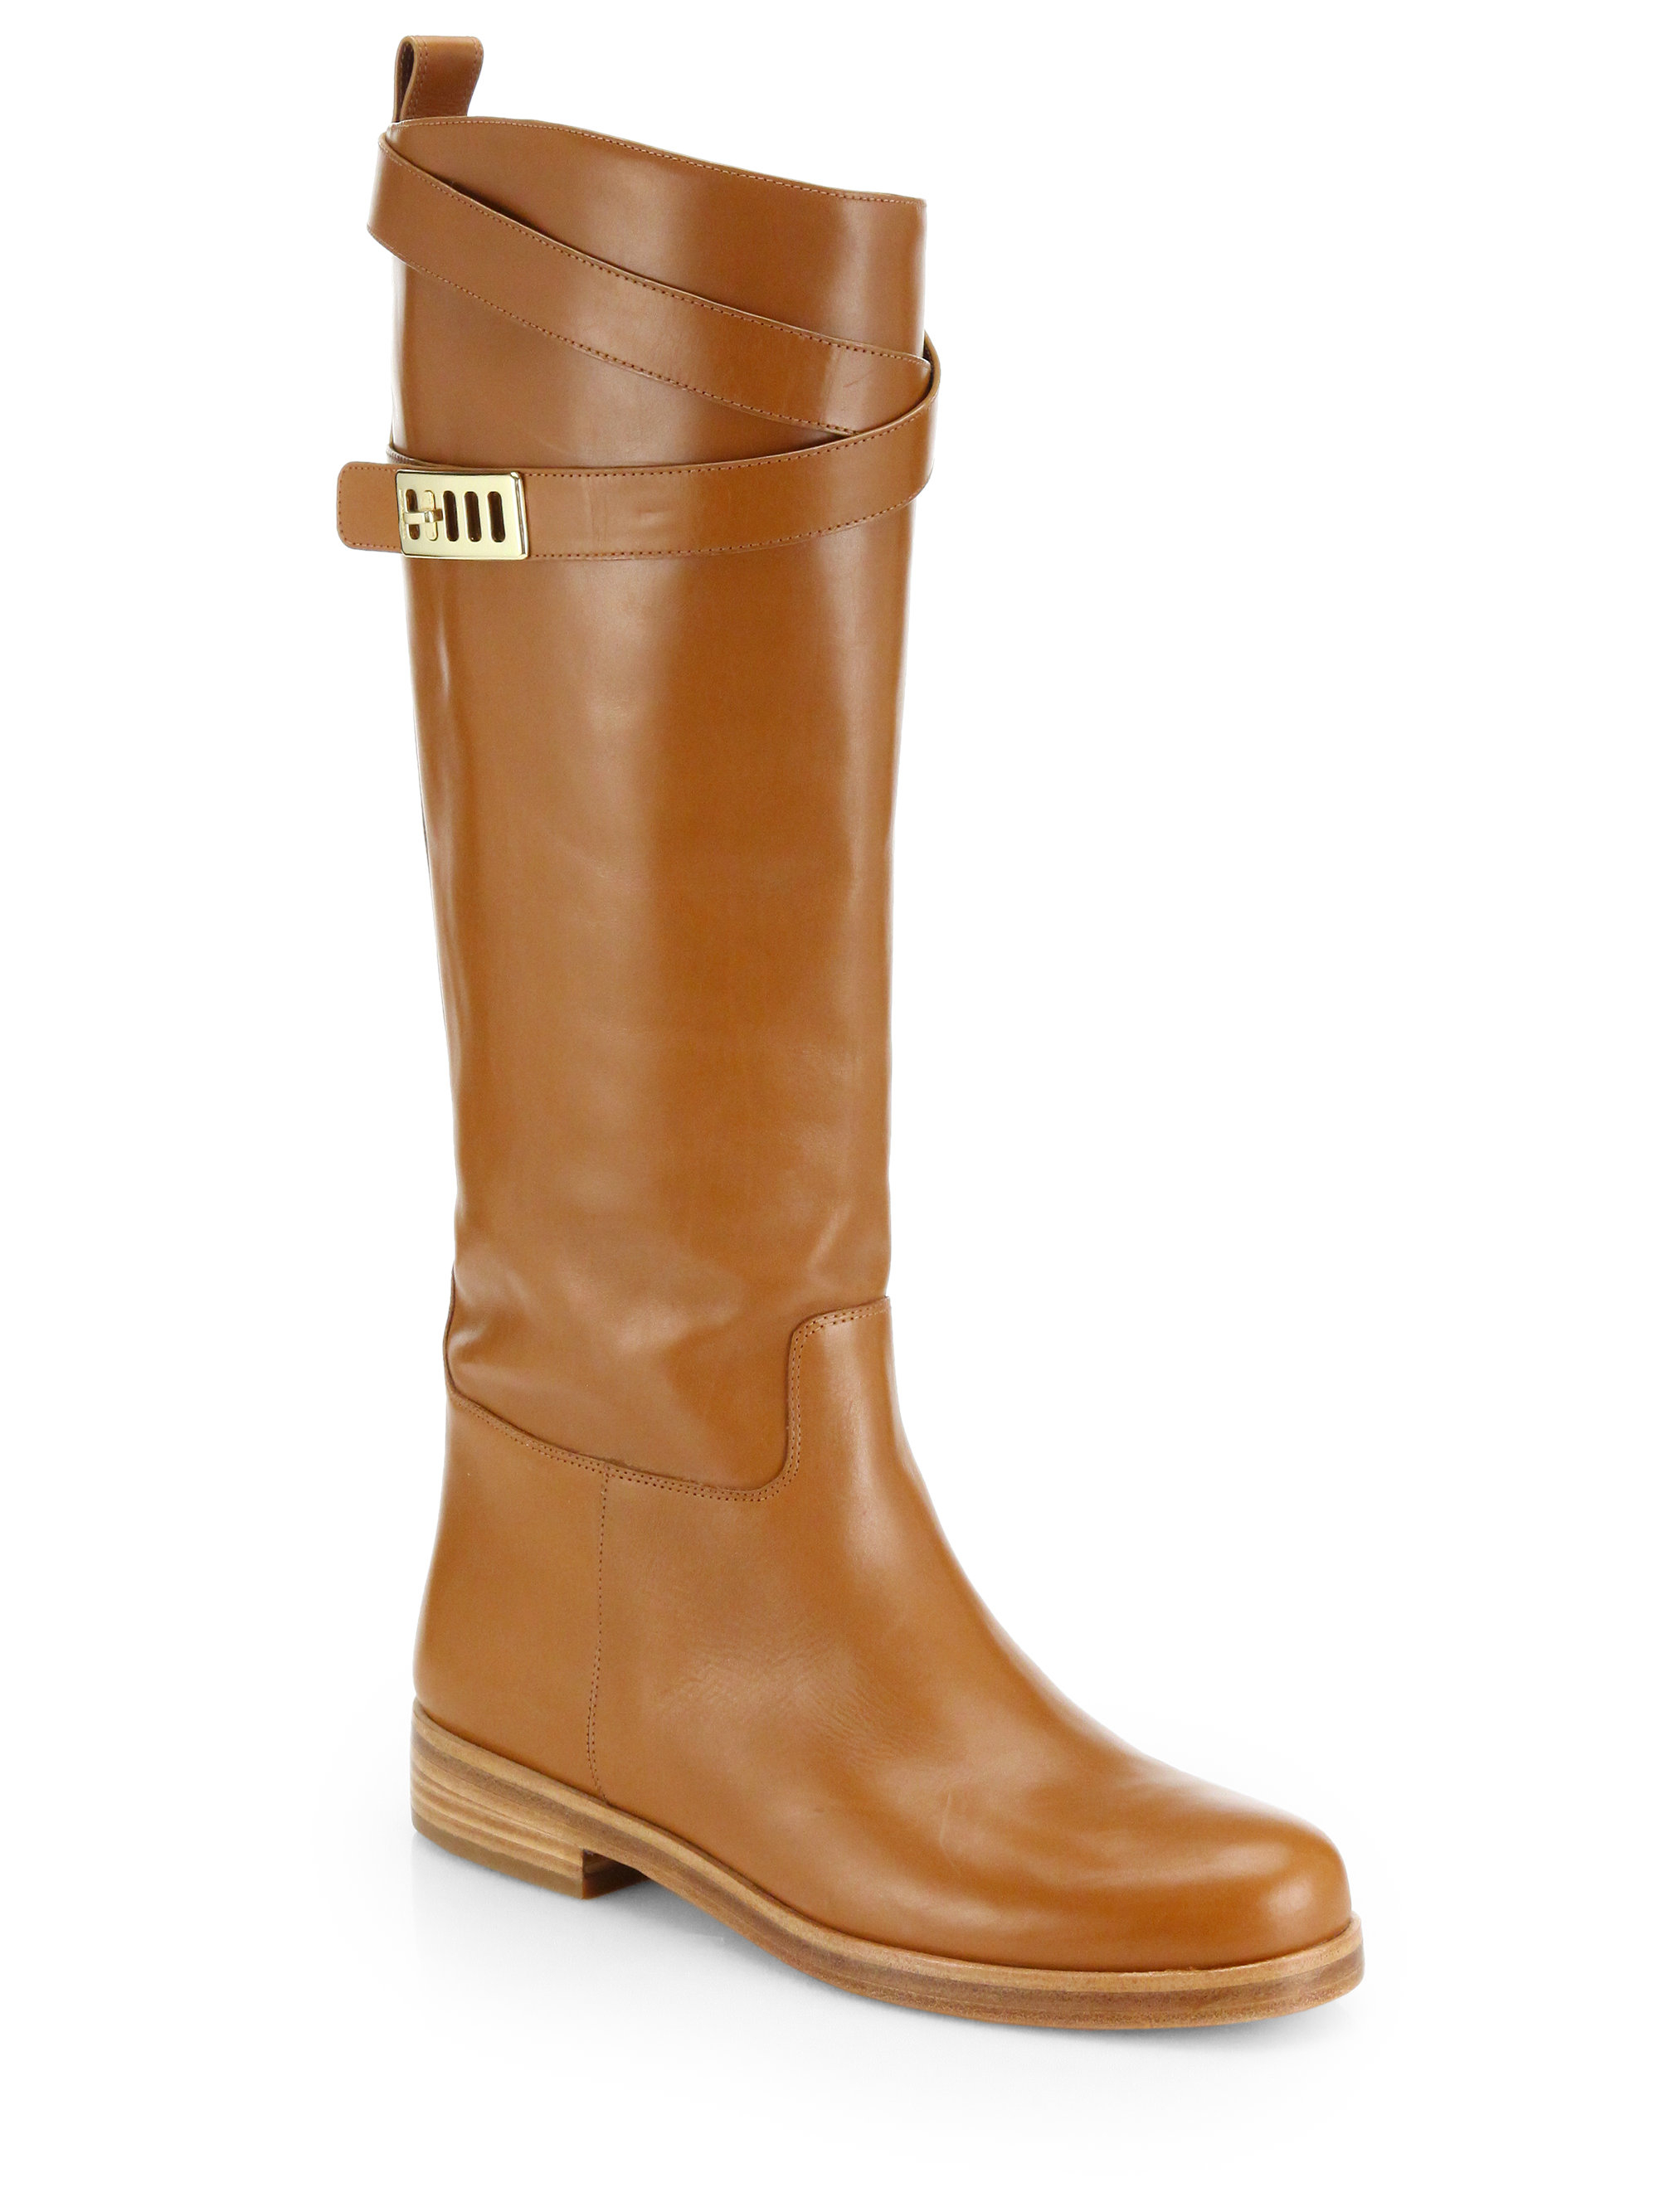 michael kors brynlee leather knee high boots in brown